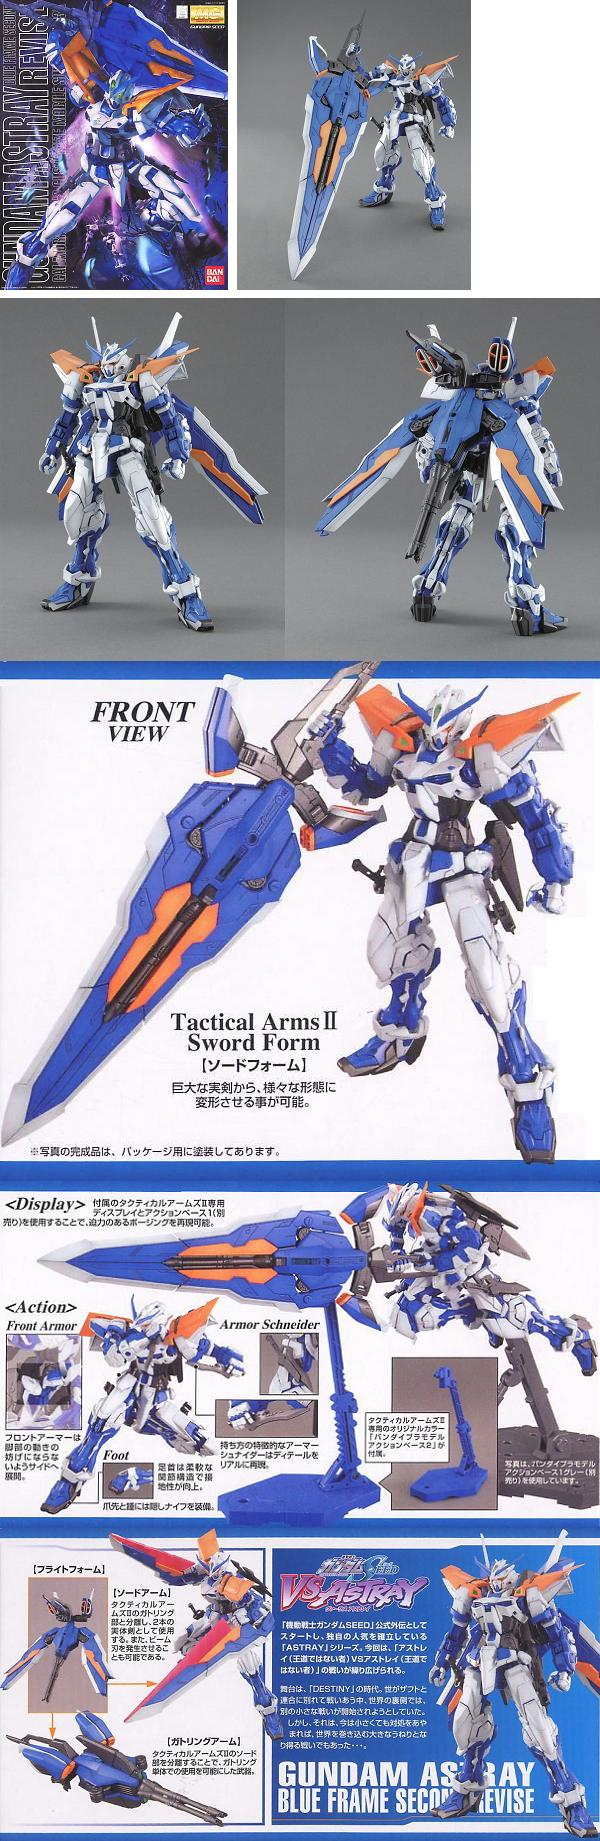 Wasabitoys Product Gundam Astray Blue Frame Second Revise People Who Bought This Also Ordered